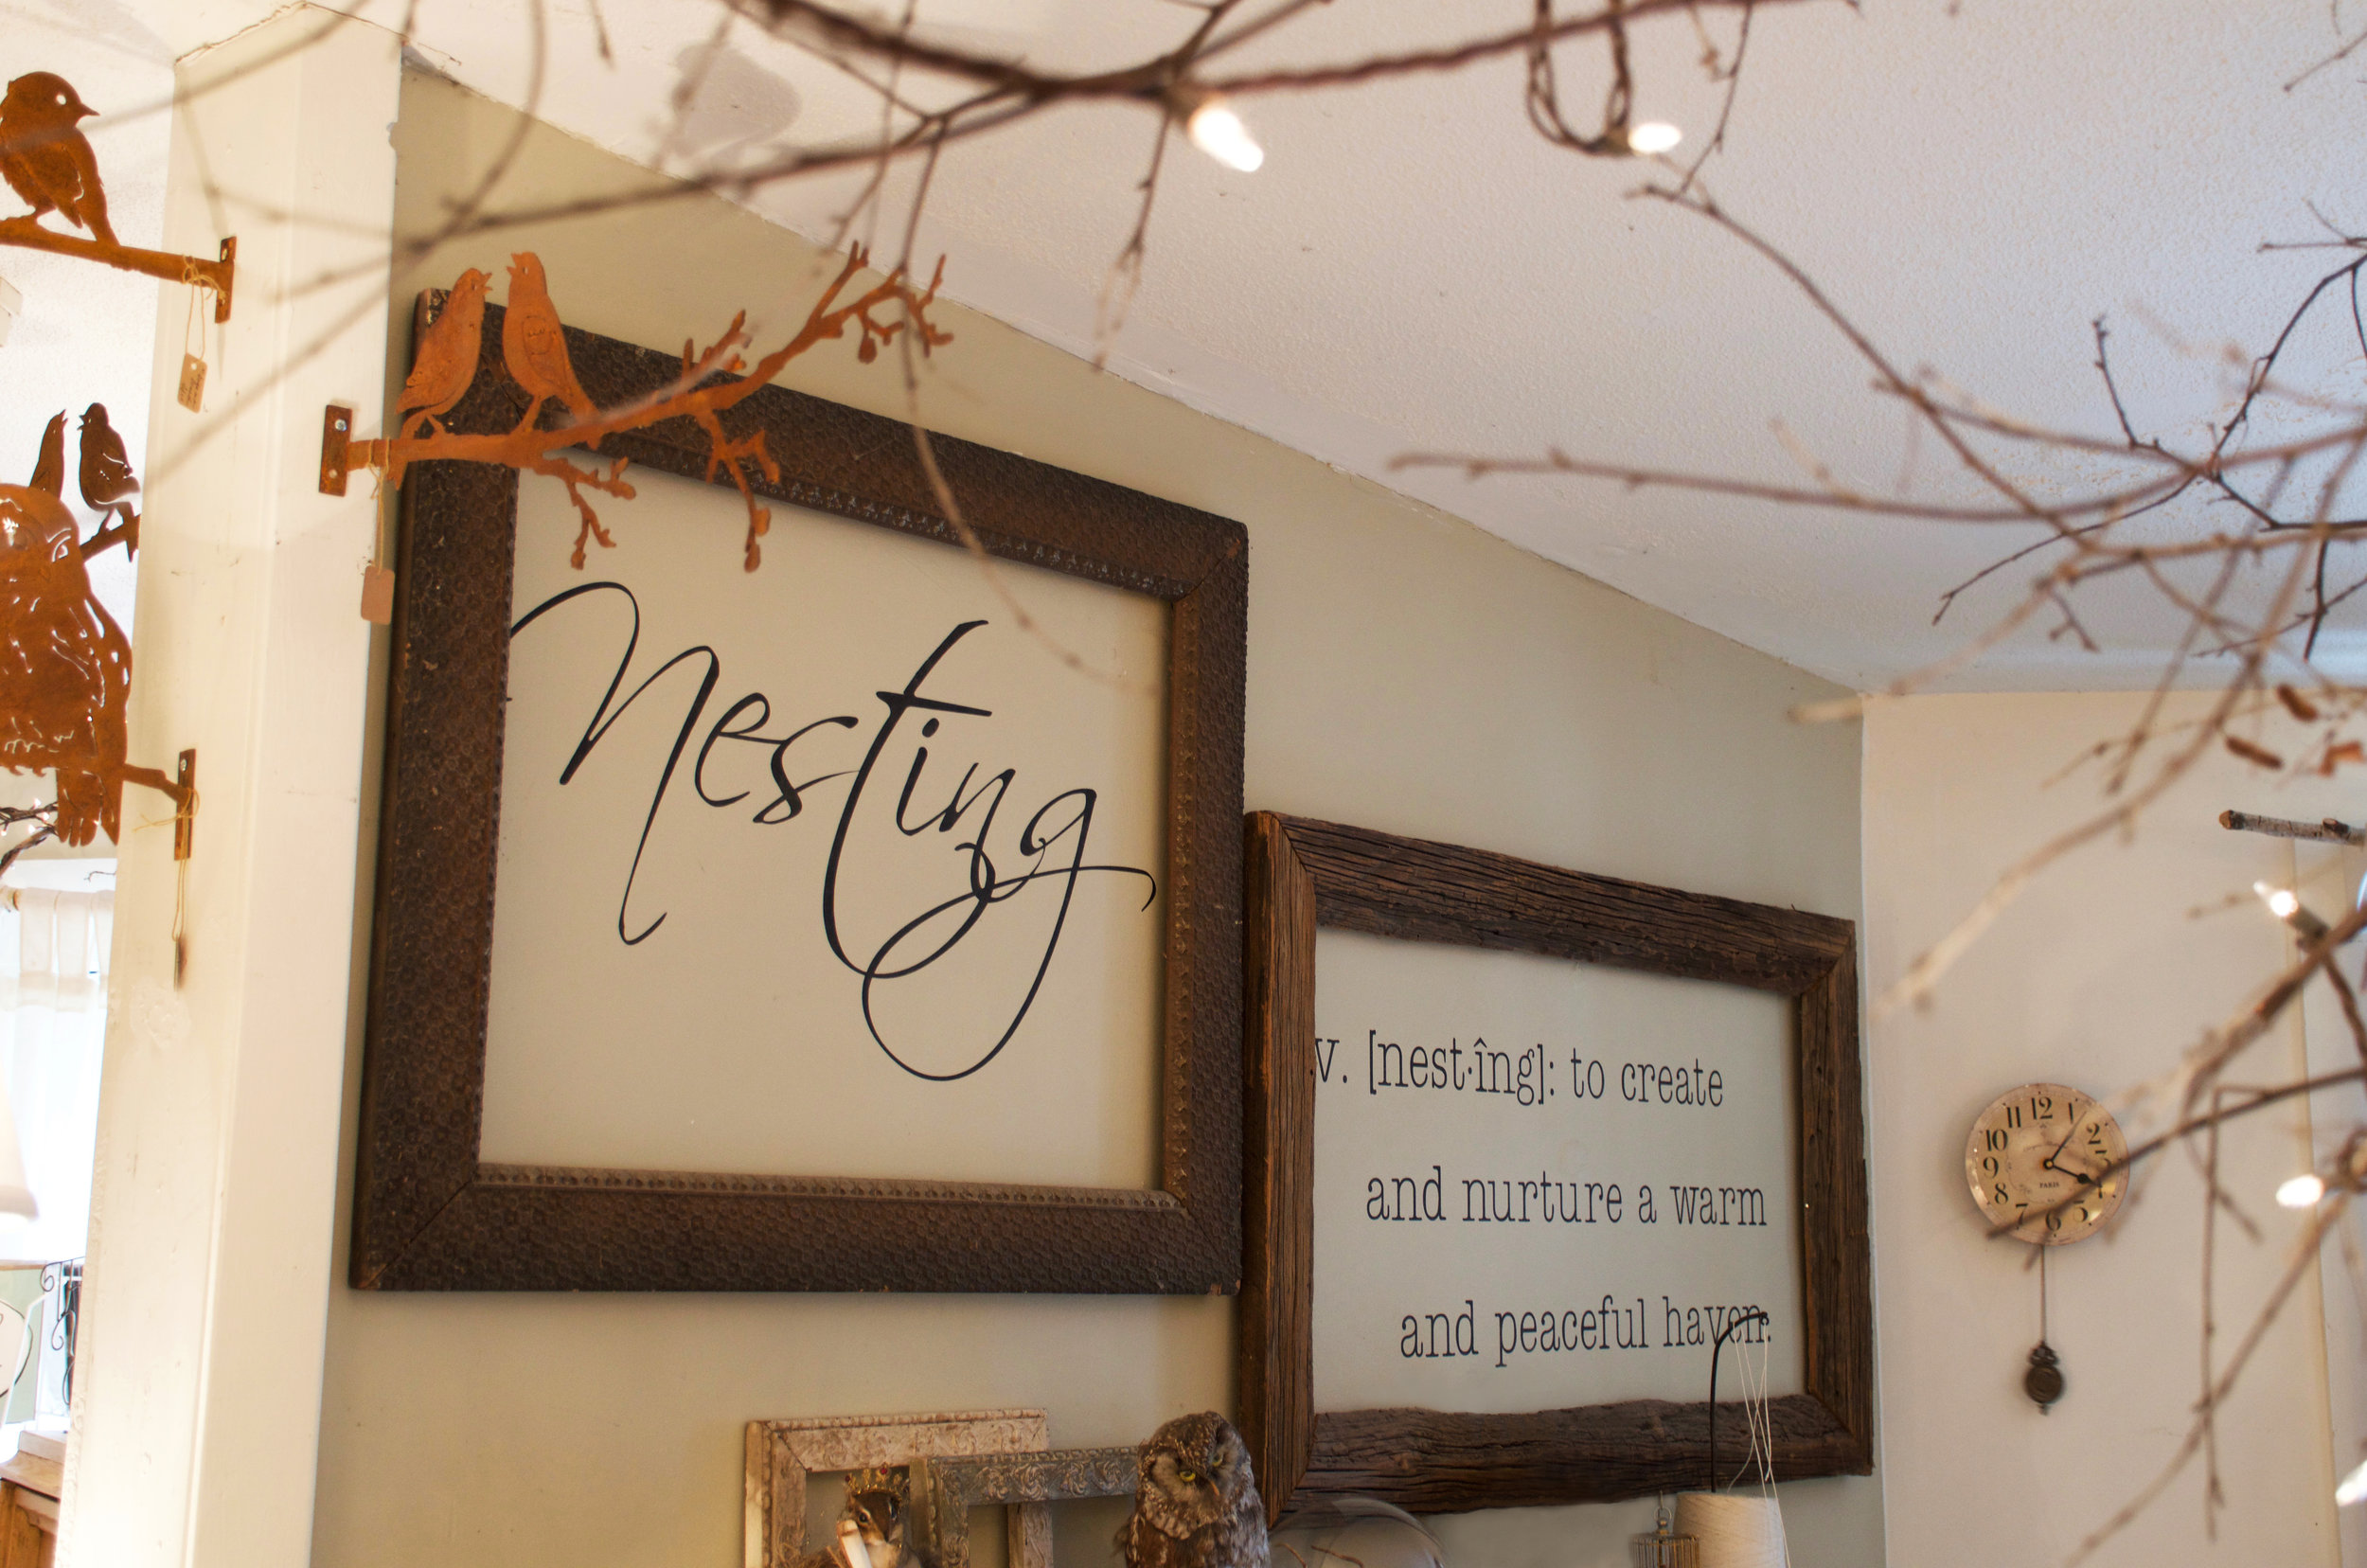 Nesting: to create and nurture a warm and peaceful haven